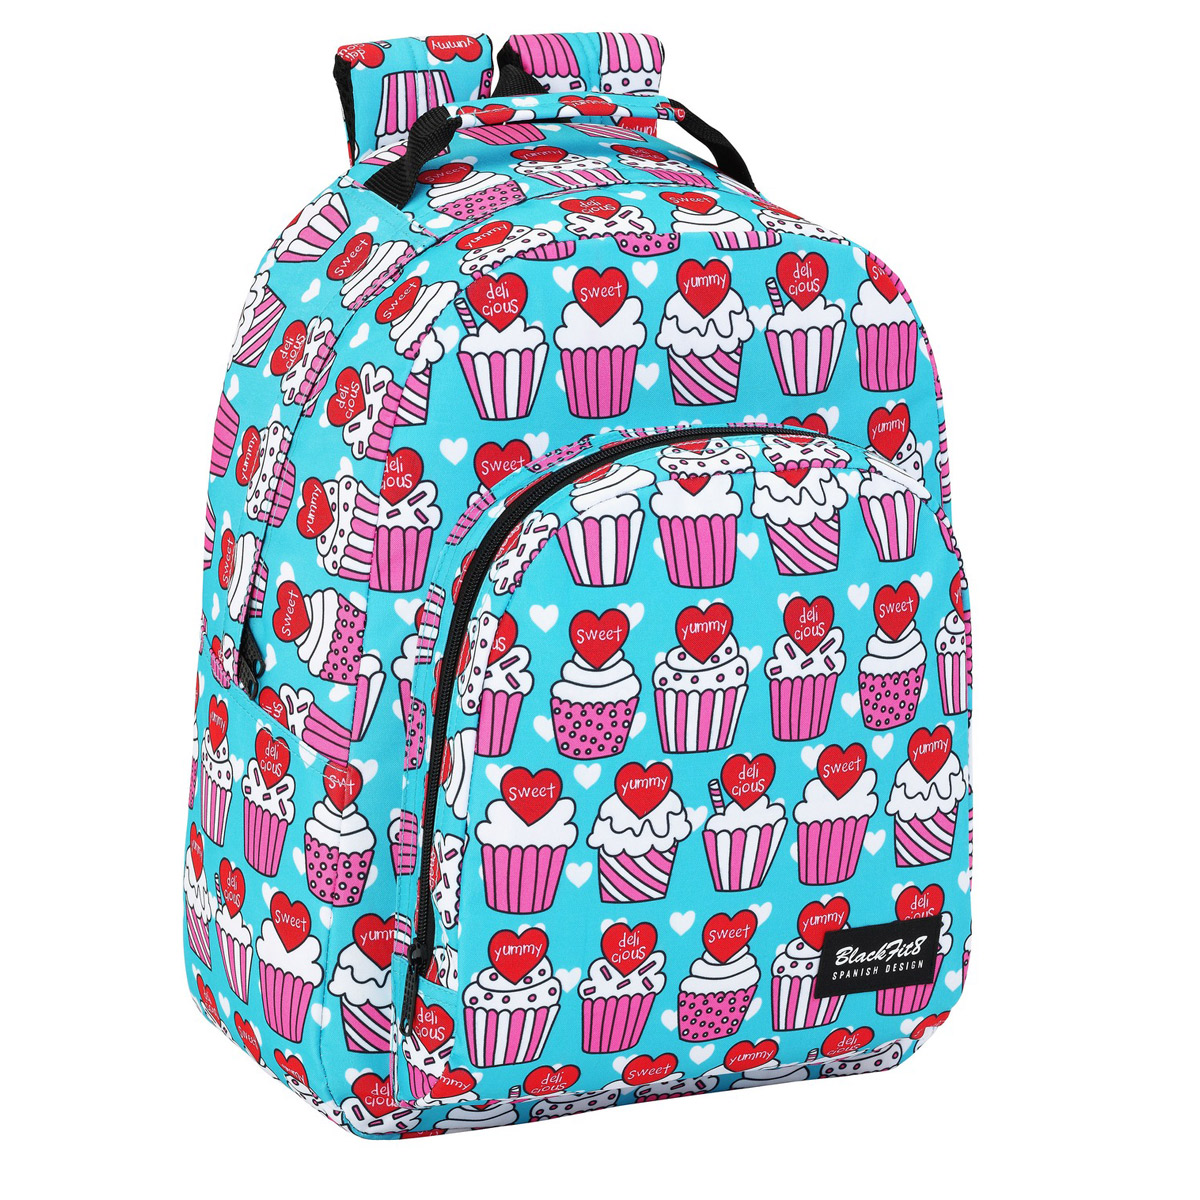 Blackfit8 Yummy Cupcake Large Backpack